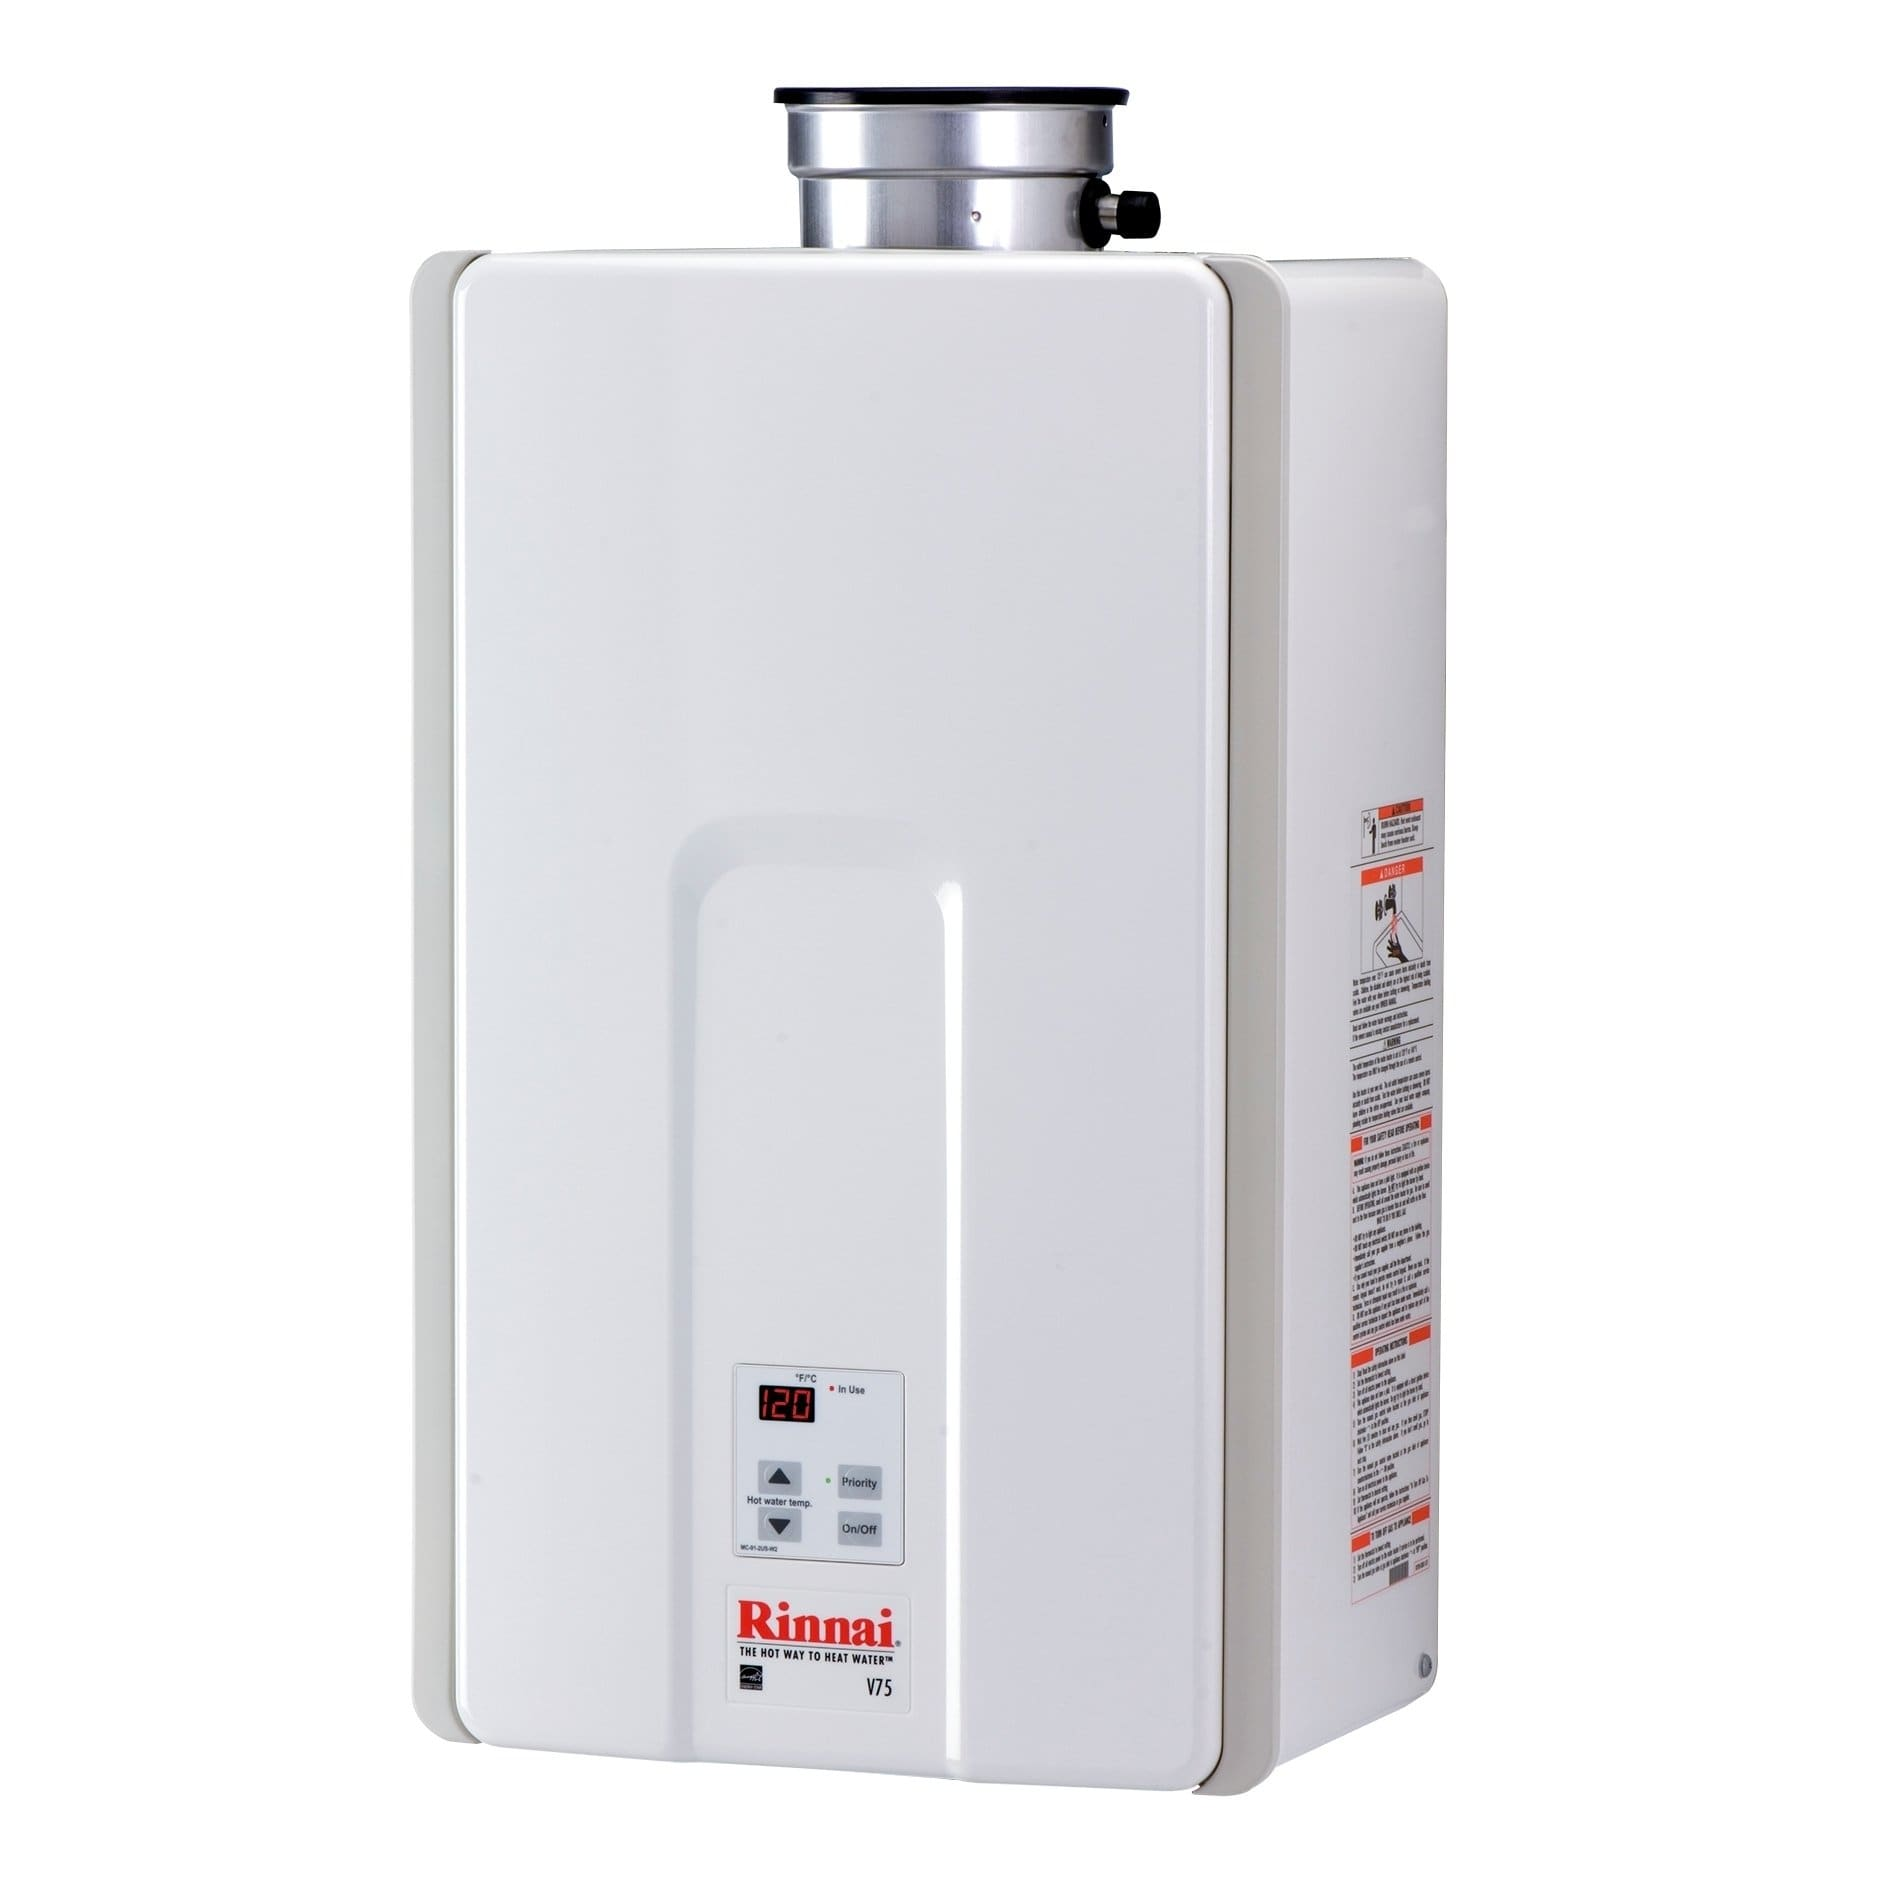 Rinnai Tankless Water Heater Residential Interior Max Btu 180 000 7 5gpm V75in White